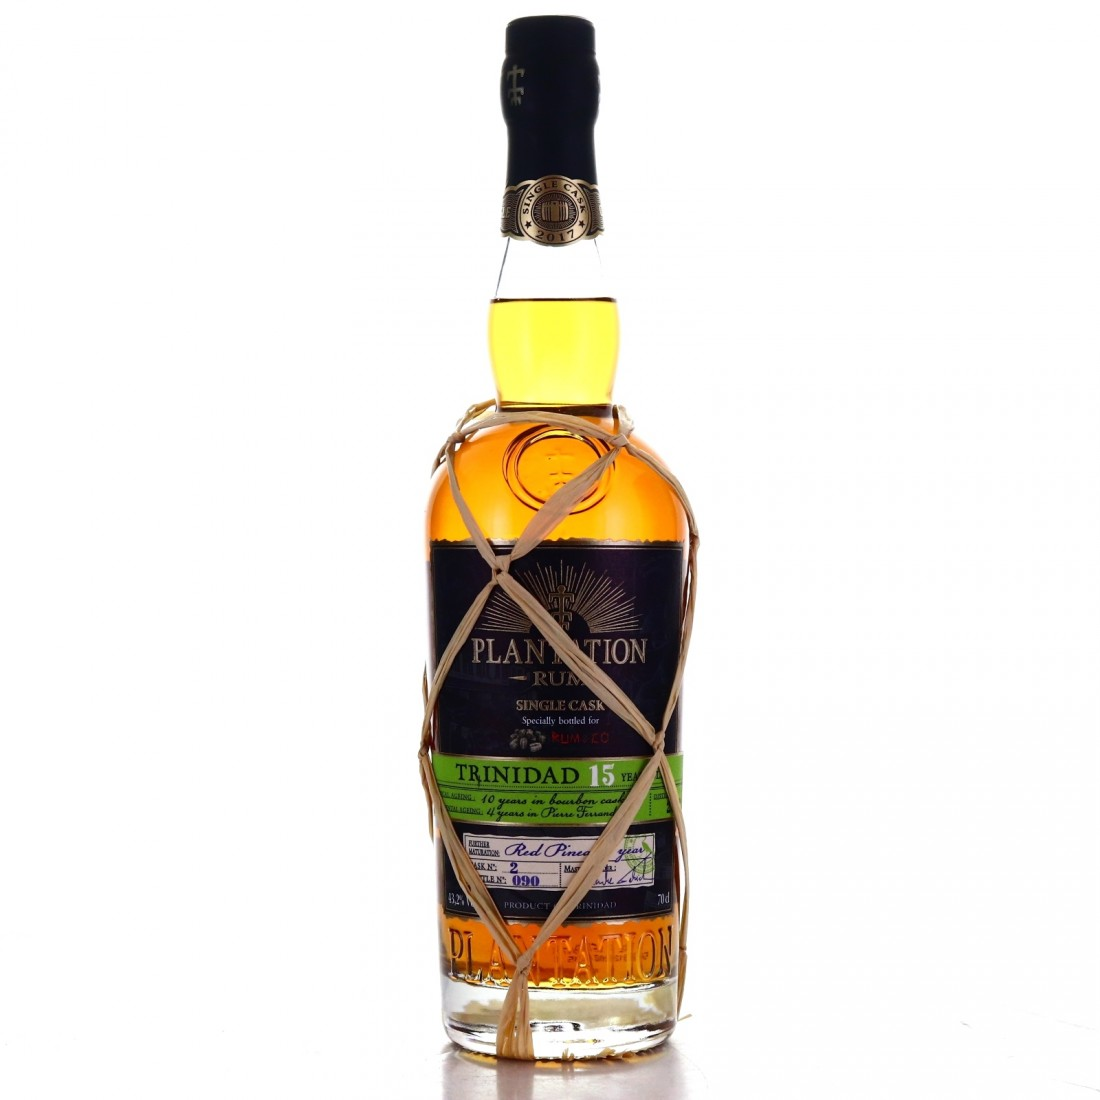 Trinidad Rum 2002 Plantation 15 Year Old Single Red Pineau Cask Finish #2 / Rum&Co